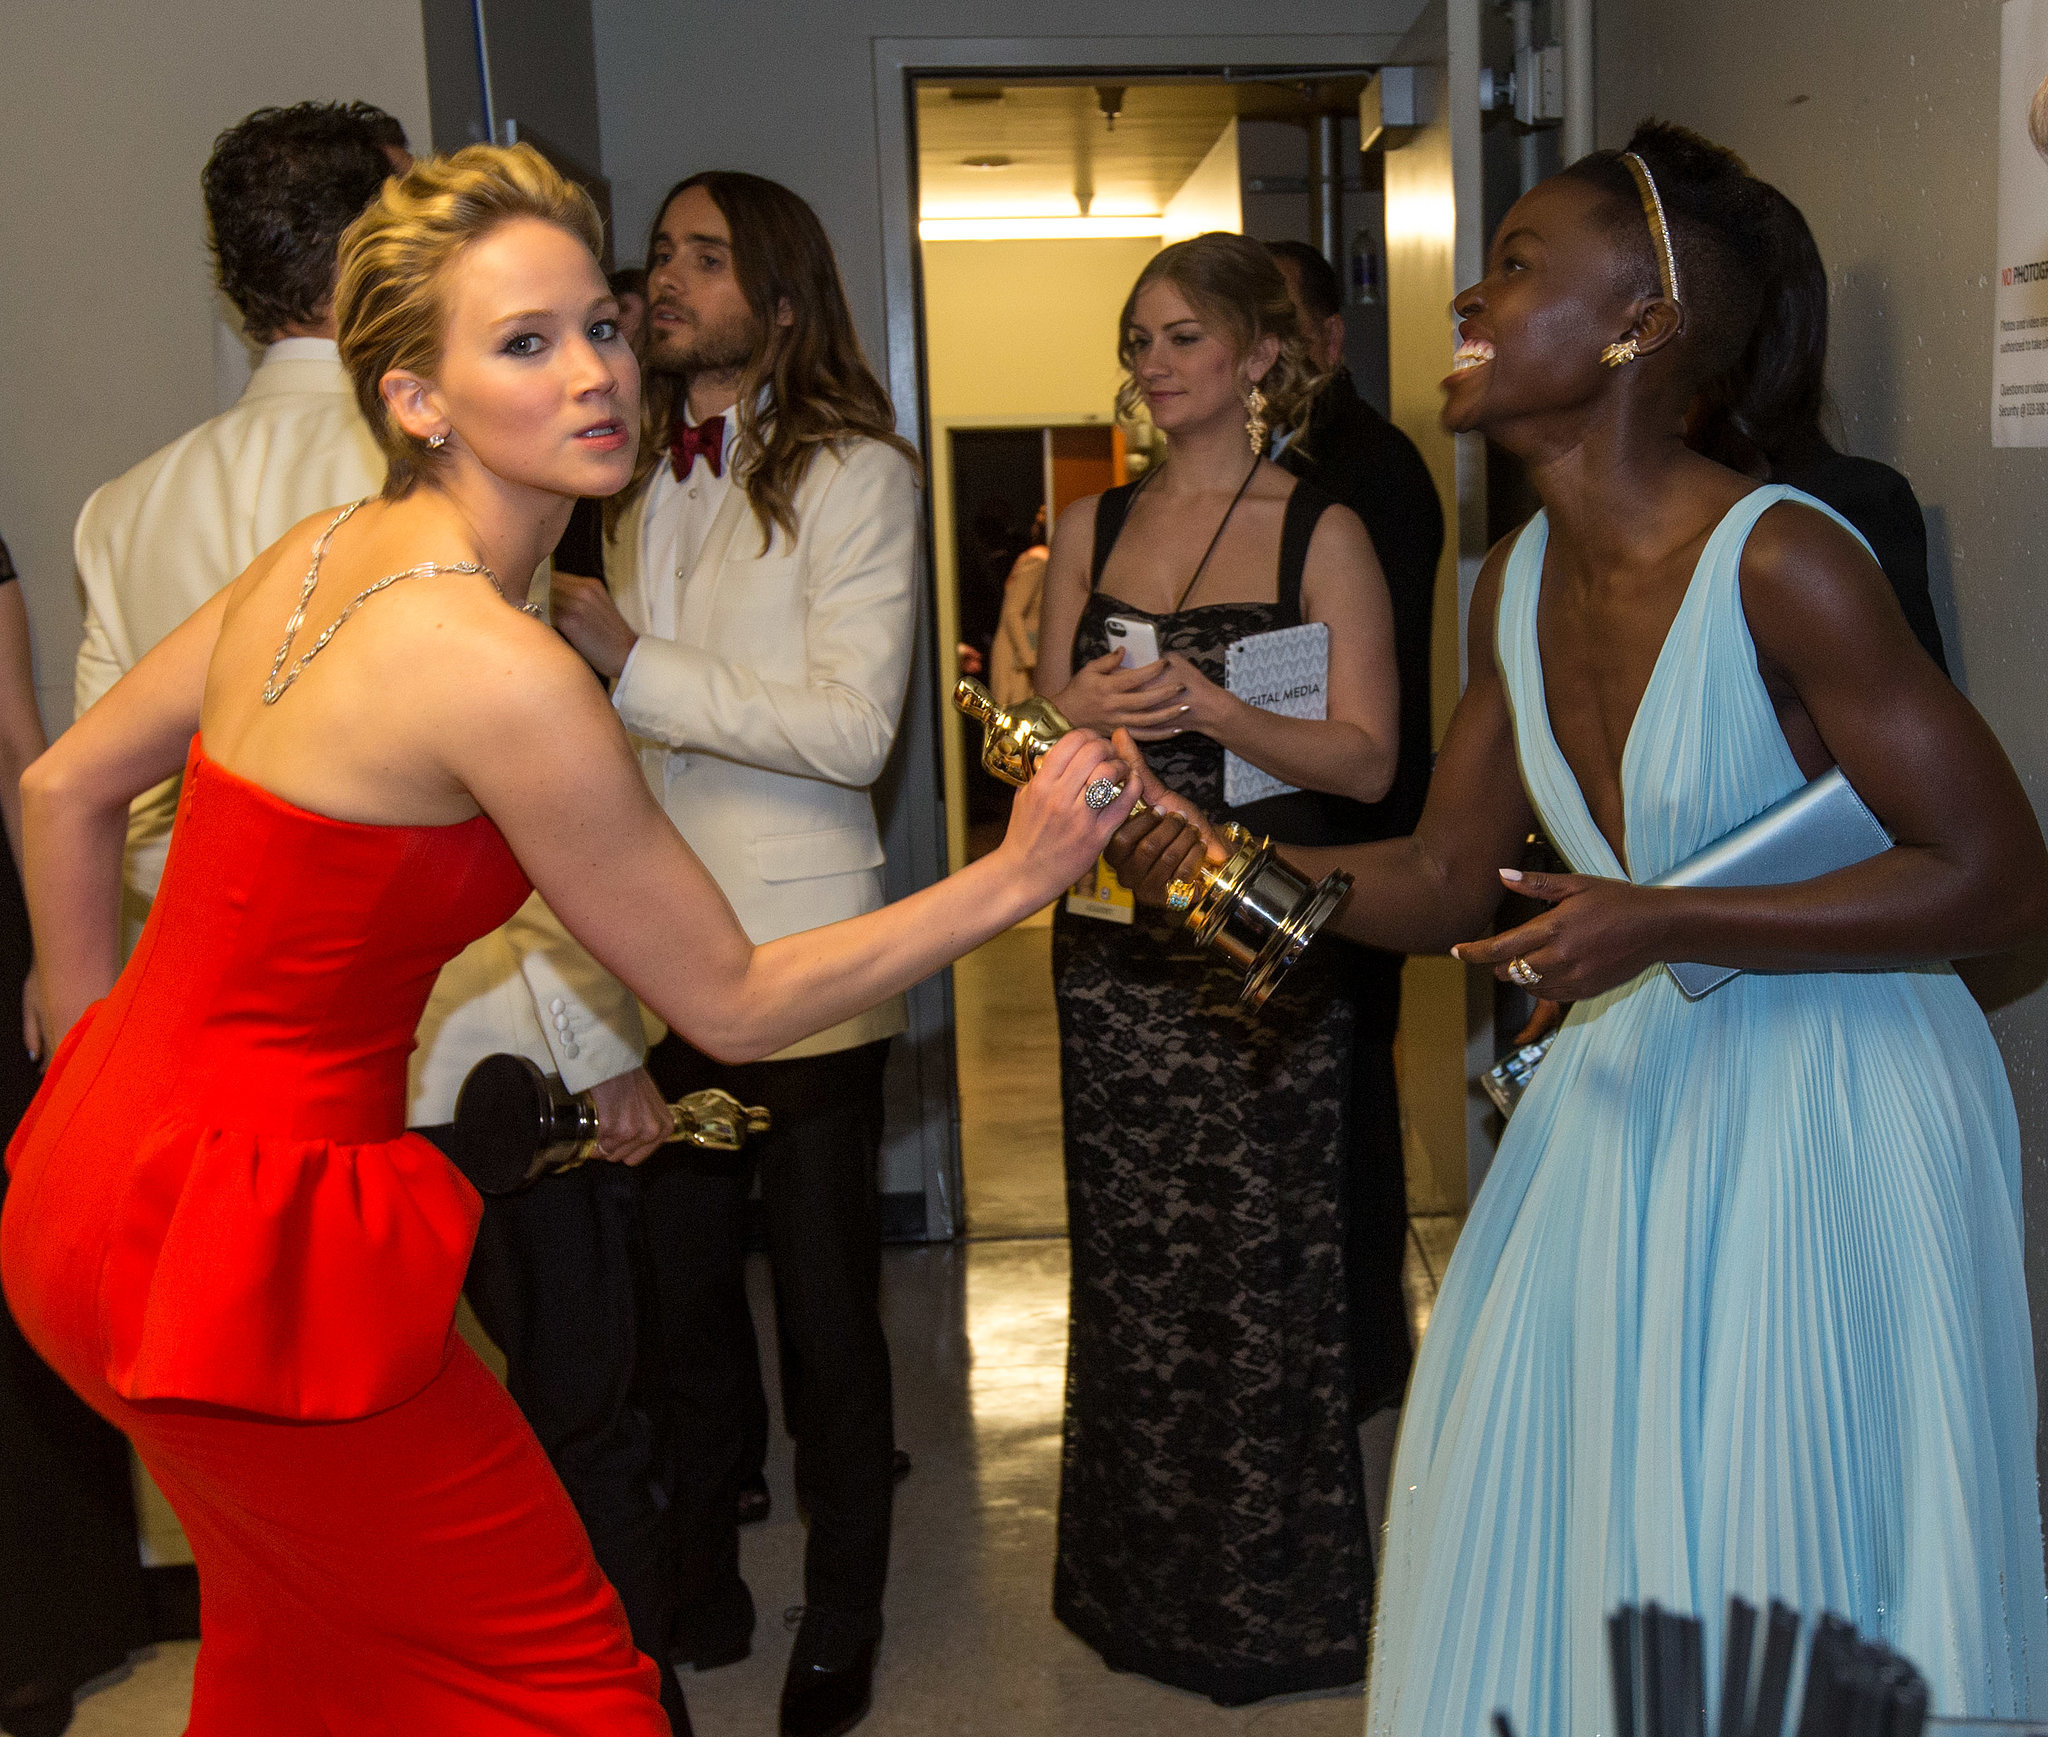 When She Lost to Lupita Nyong'o at the Oscars but Won With This Funny Snap